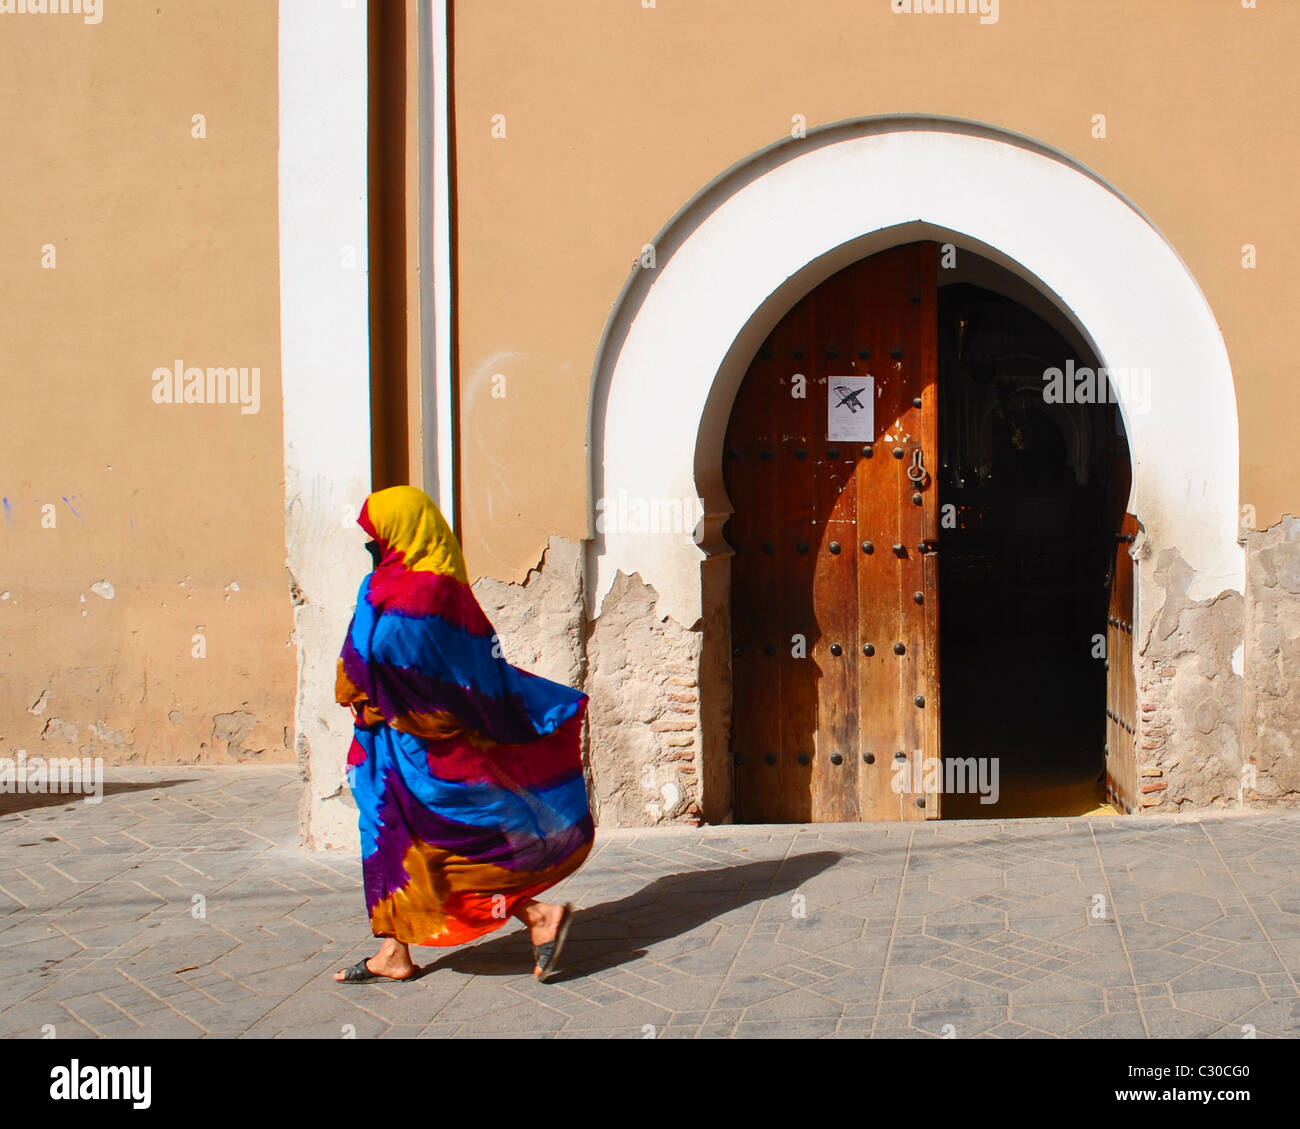 Woman in colourful, flowing jellaba, walking past an open door in Taroudant, Morocco - Stock Image